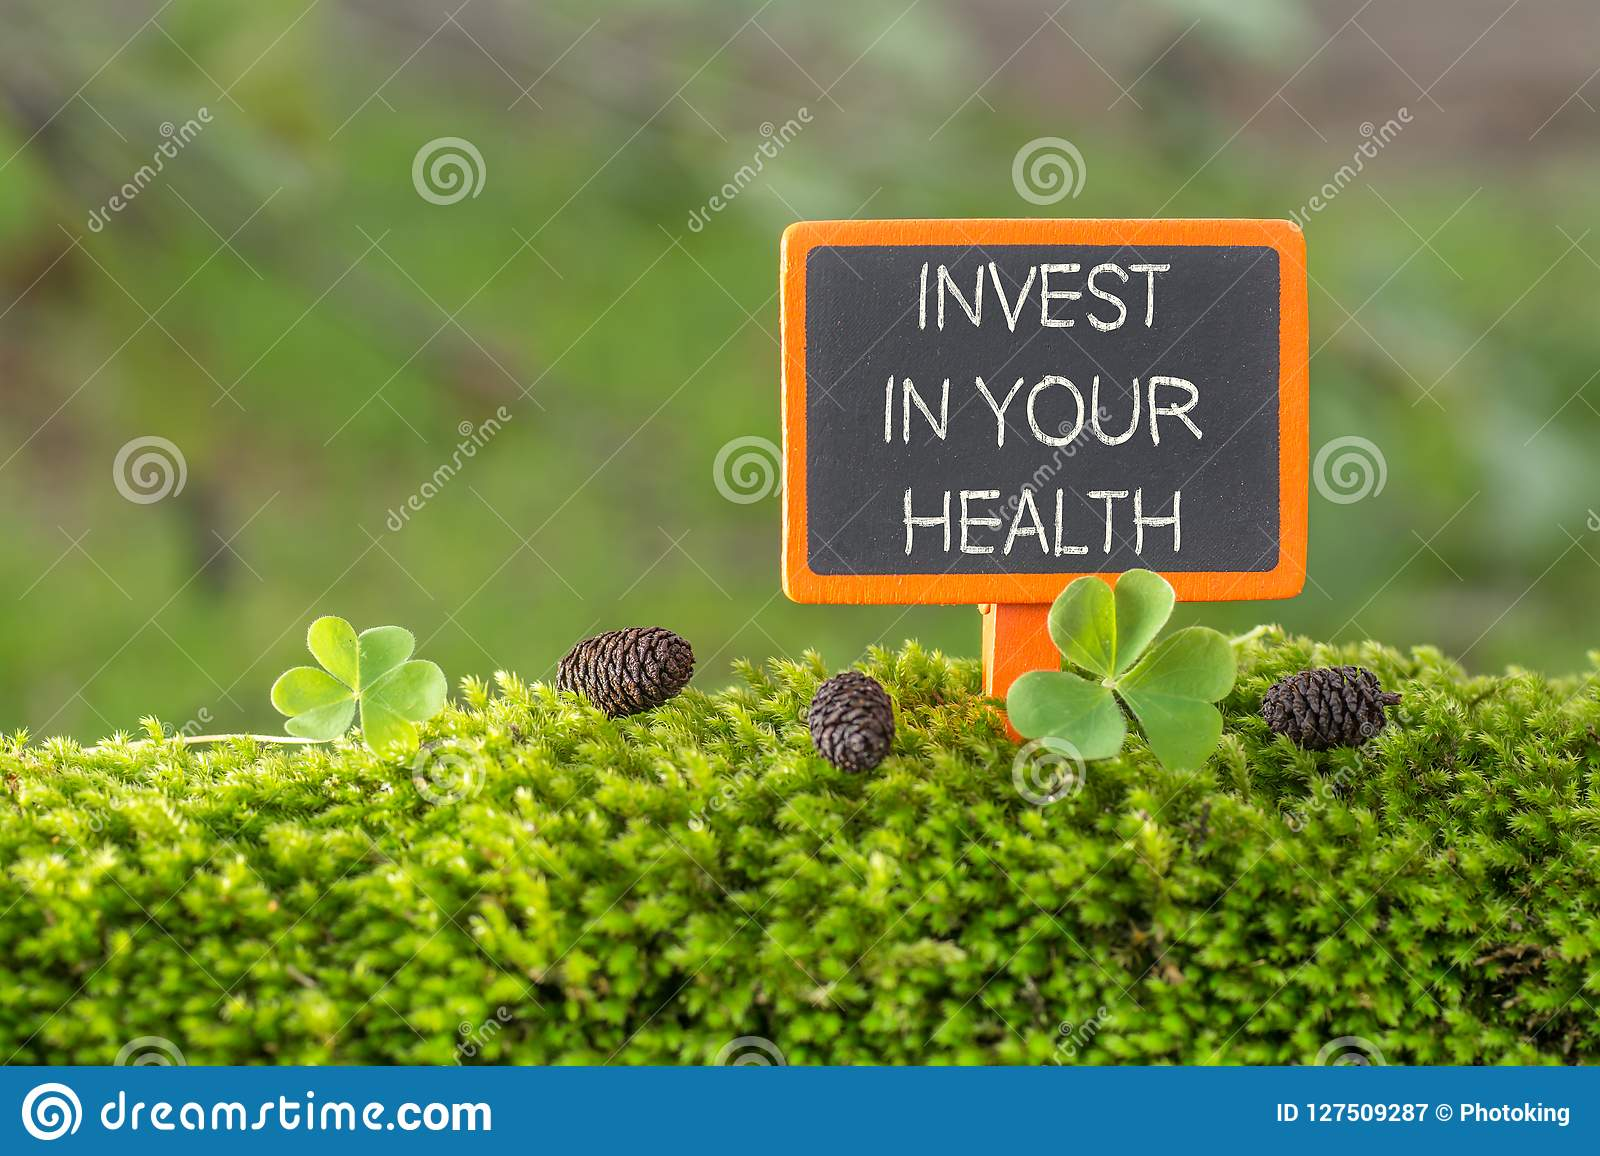 Invest in your health text on small blackboard